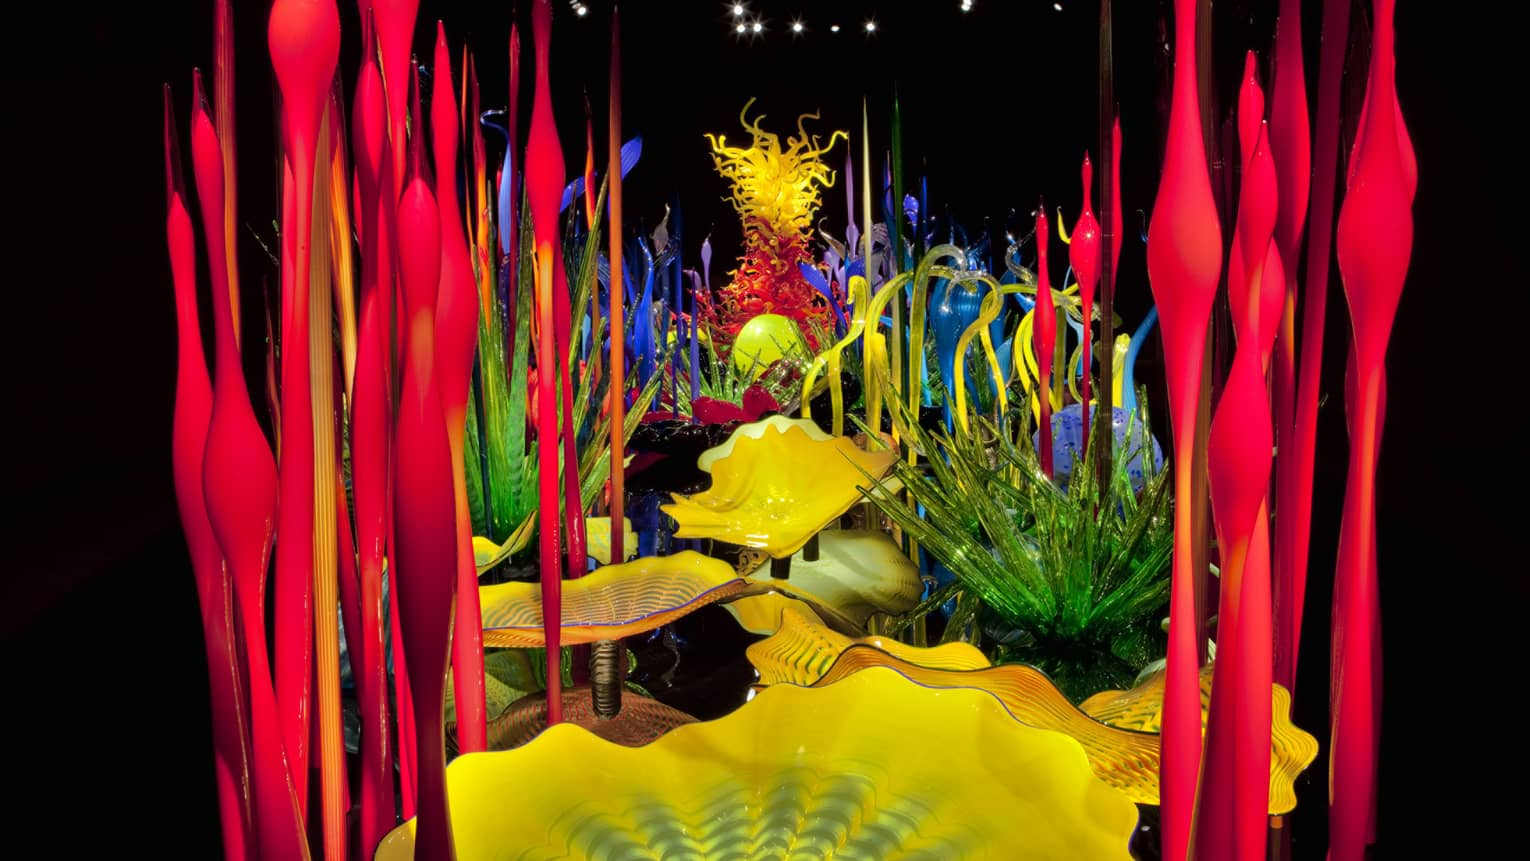 Colourful glass Chihuly sculptures in art exhibit